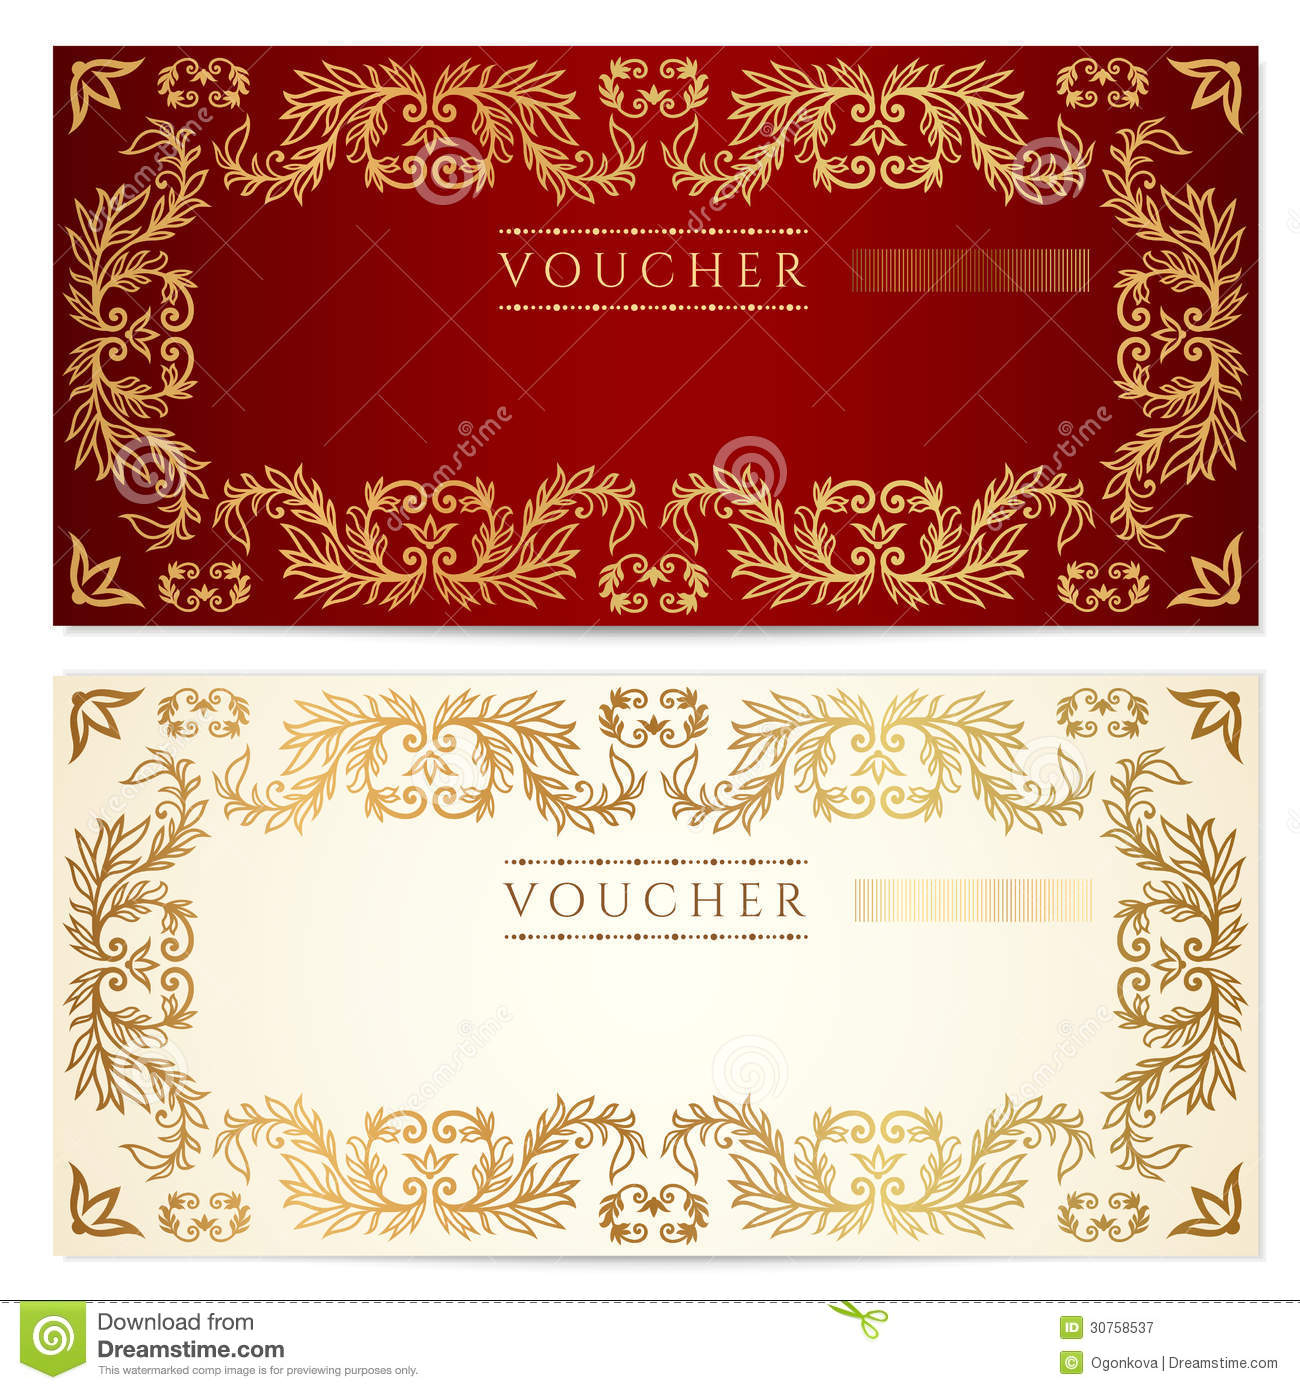 gift certificate voucher template bow pattern royalty voucher gift certificate template gold pattern royalty stock photography